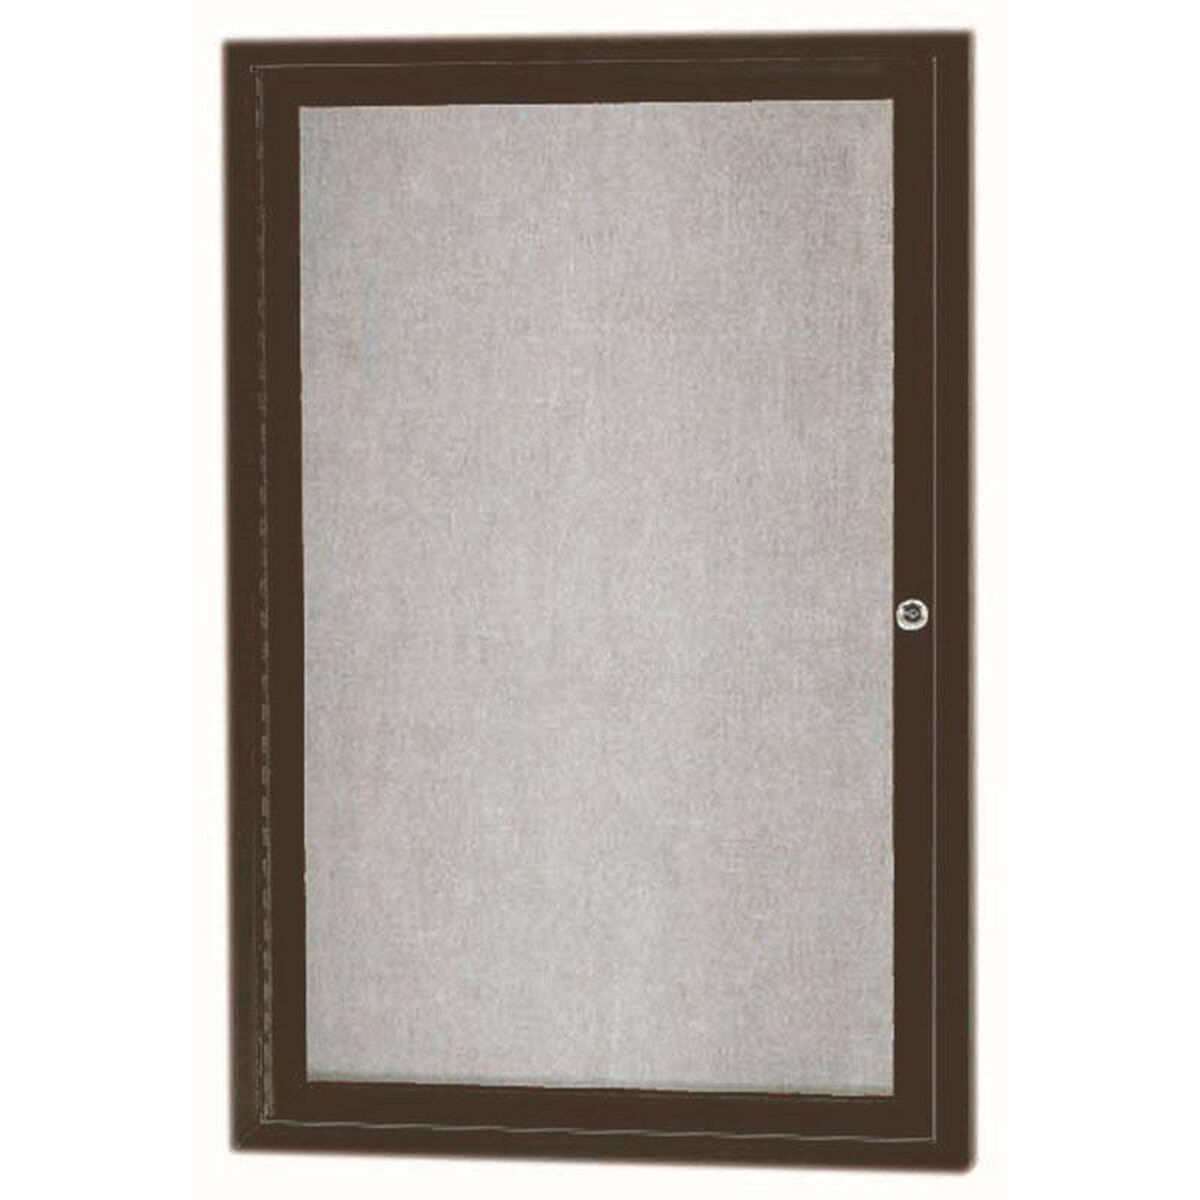 1 Door Outdoor Illuminated Enclosed Bulletin Board With Bronze Anodized Aluminum Frame 36h X 24w